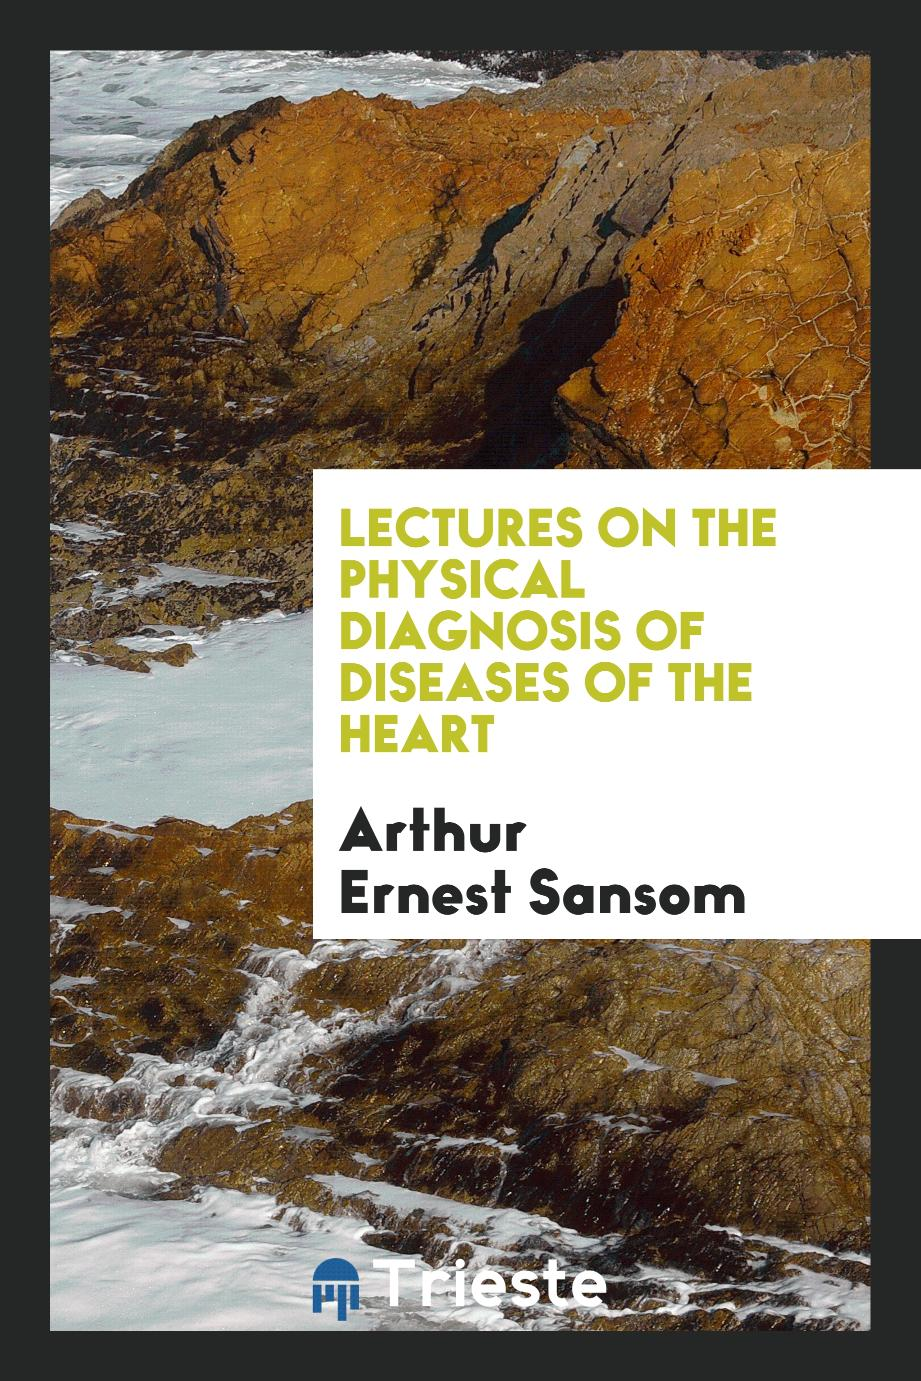 Lectures on the Physical Diagnosis of Diseases of the Heart